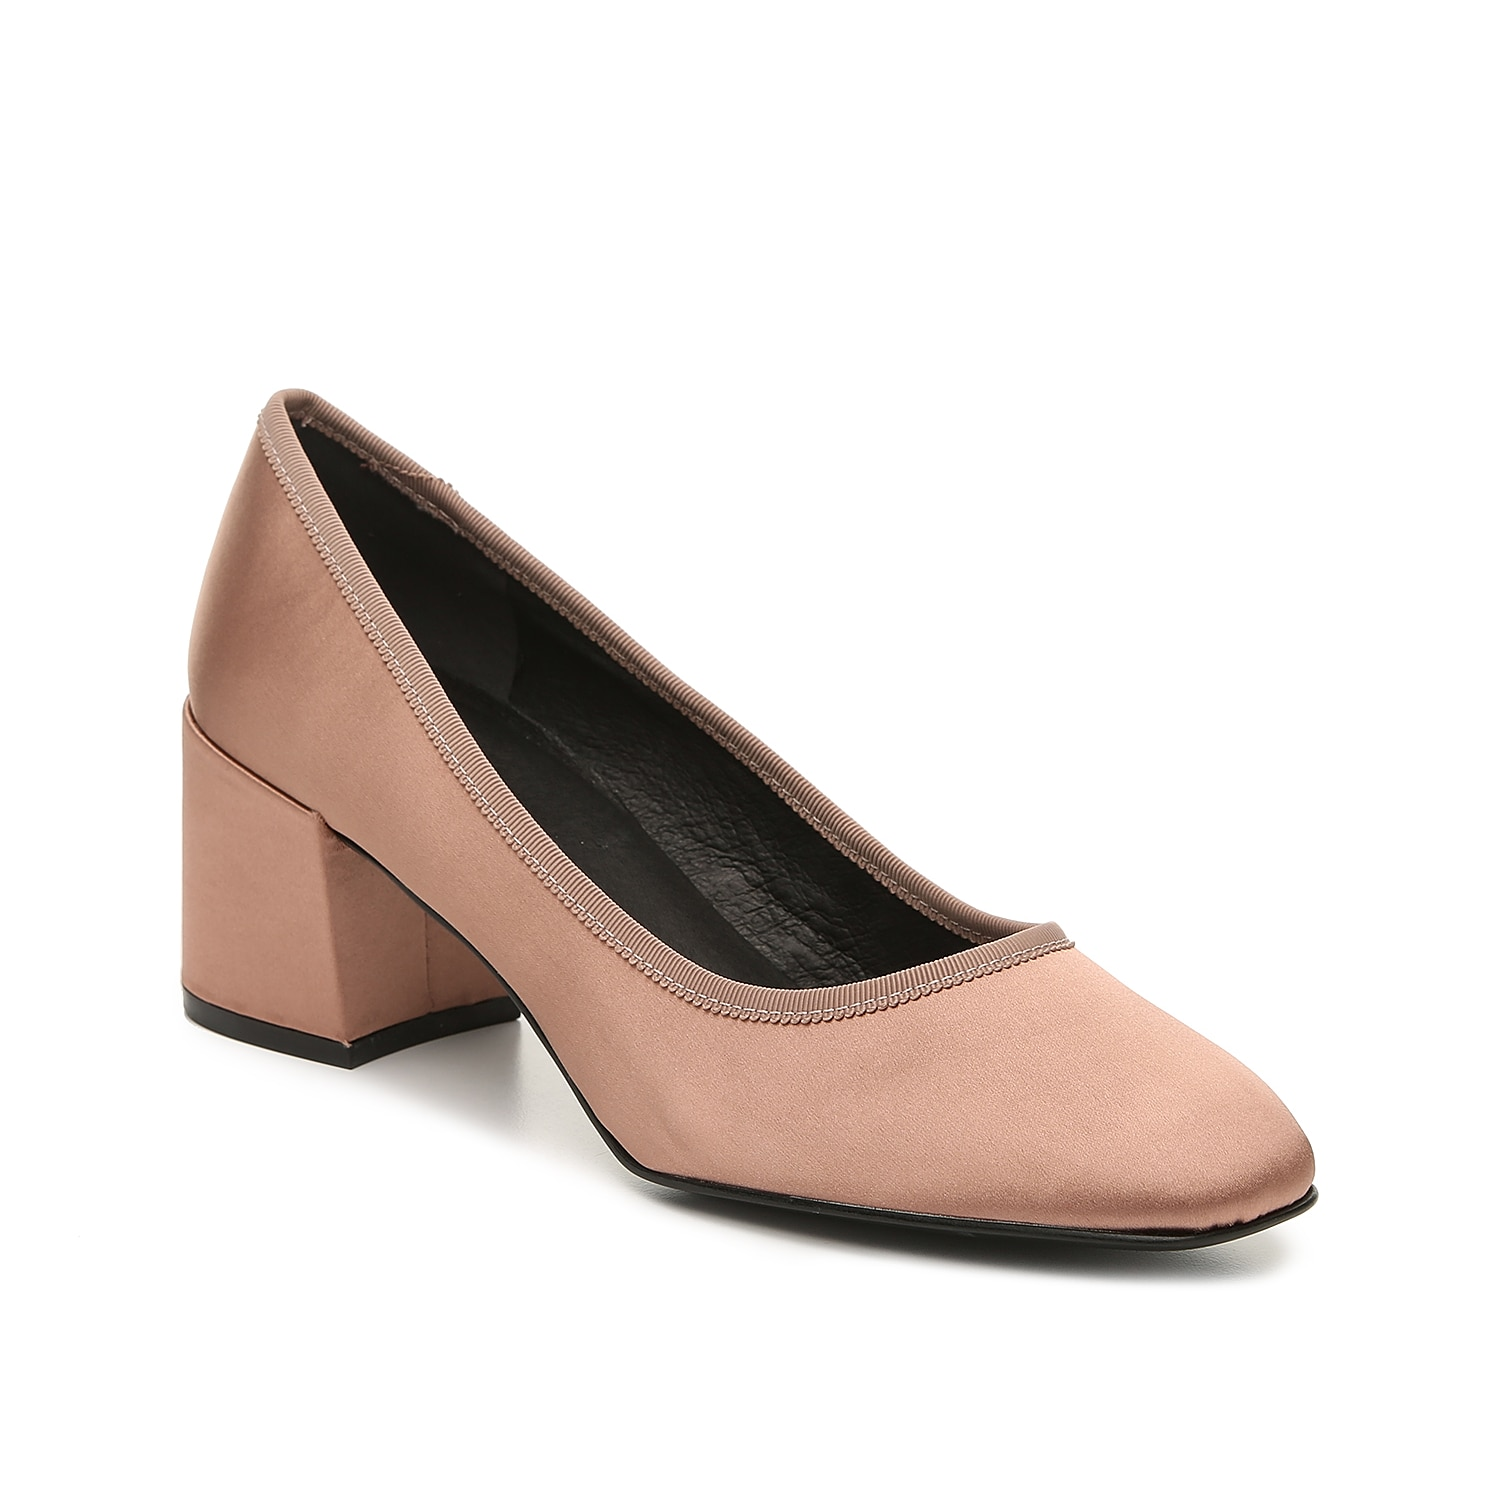 The Eryn pump from Kenneth Cole New York flaunts a classic design with a modern twist. A chunky block heel and grosgrain ribbon trim complements the square toe for a versatile silhouette.